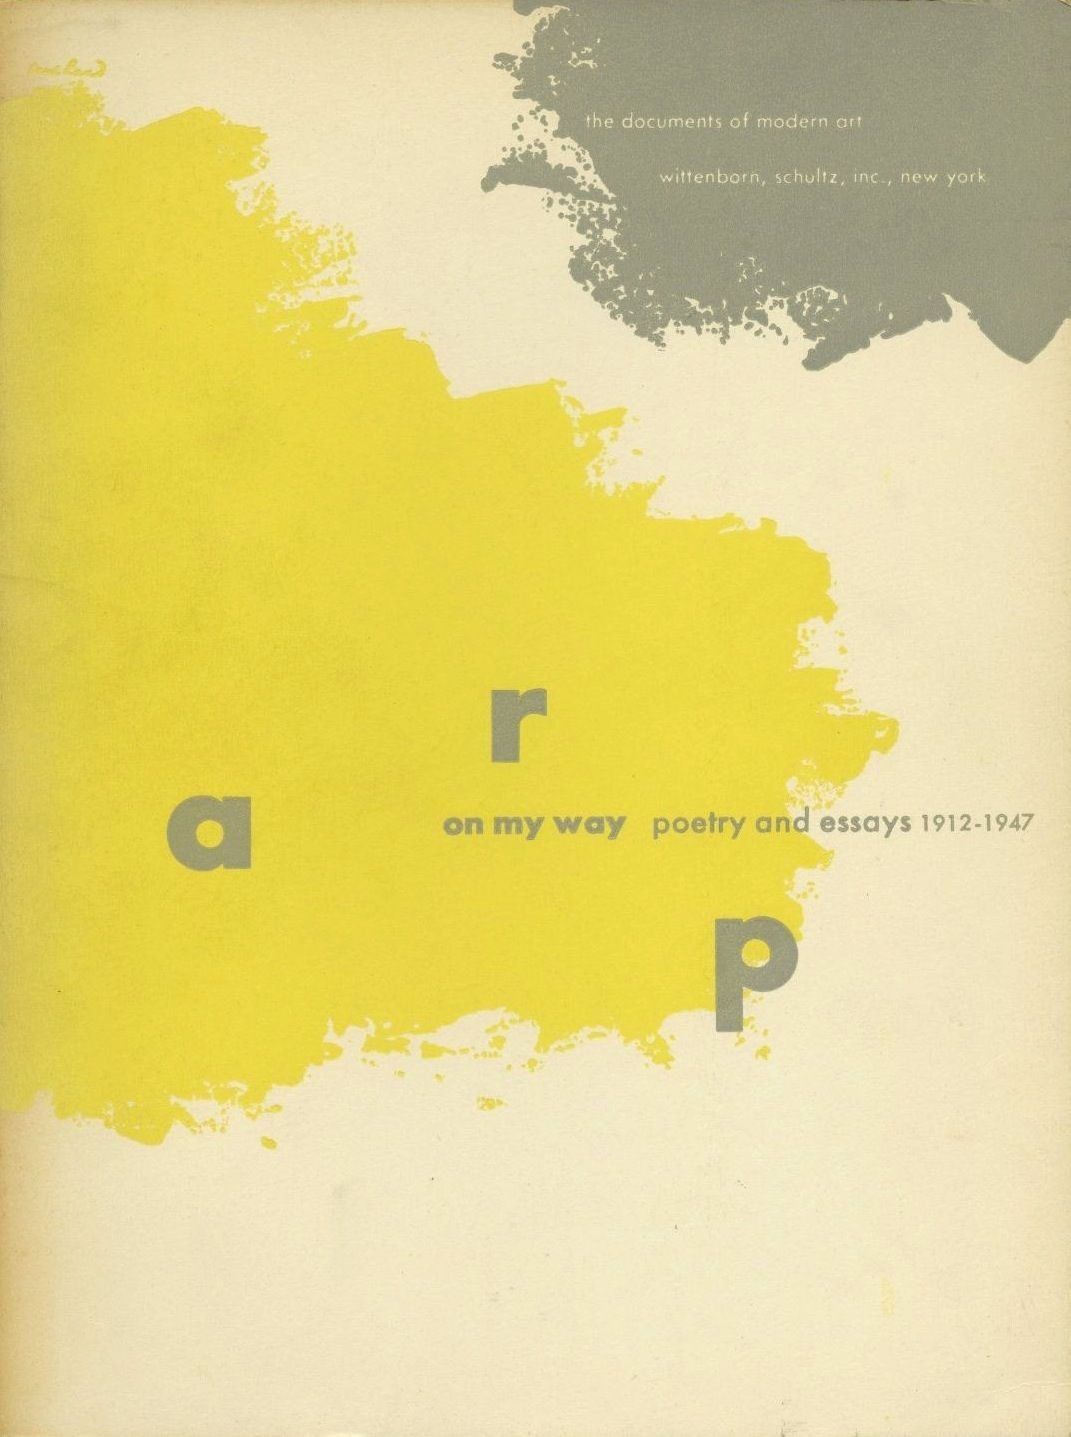 arp on my way poetry and essays 1912 1947 wittenborn schulz arp on my way poetry and essays 1912 1947 wittenborn schulz